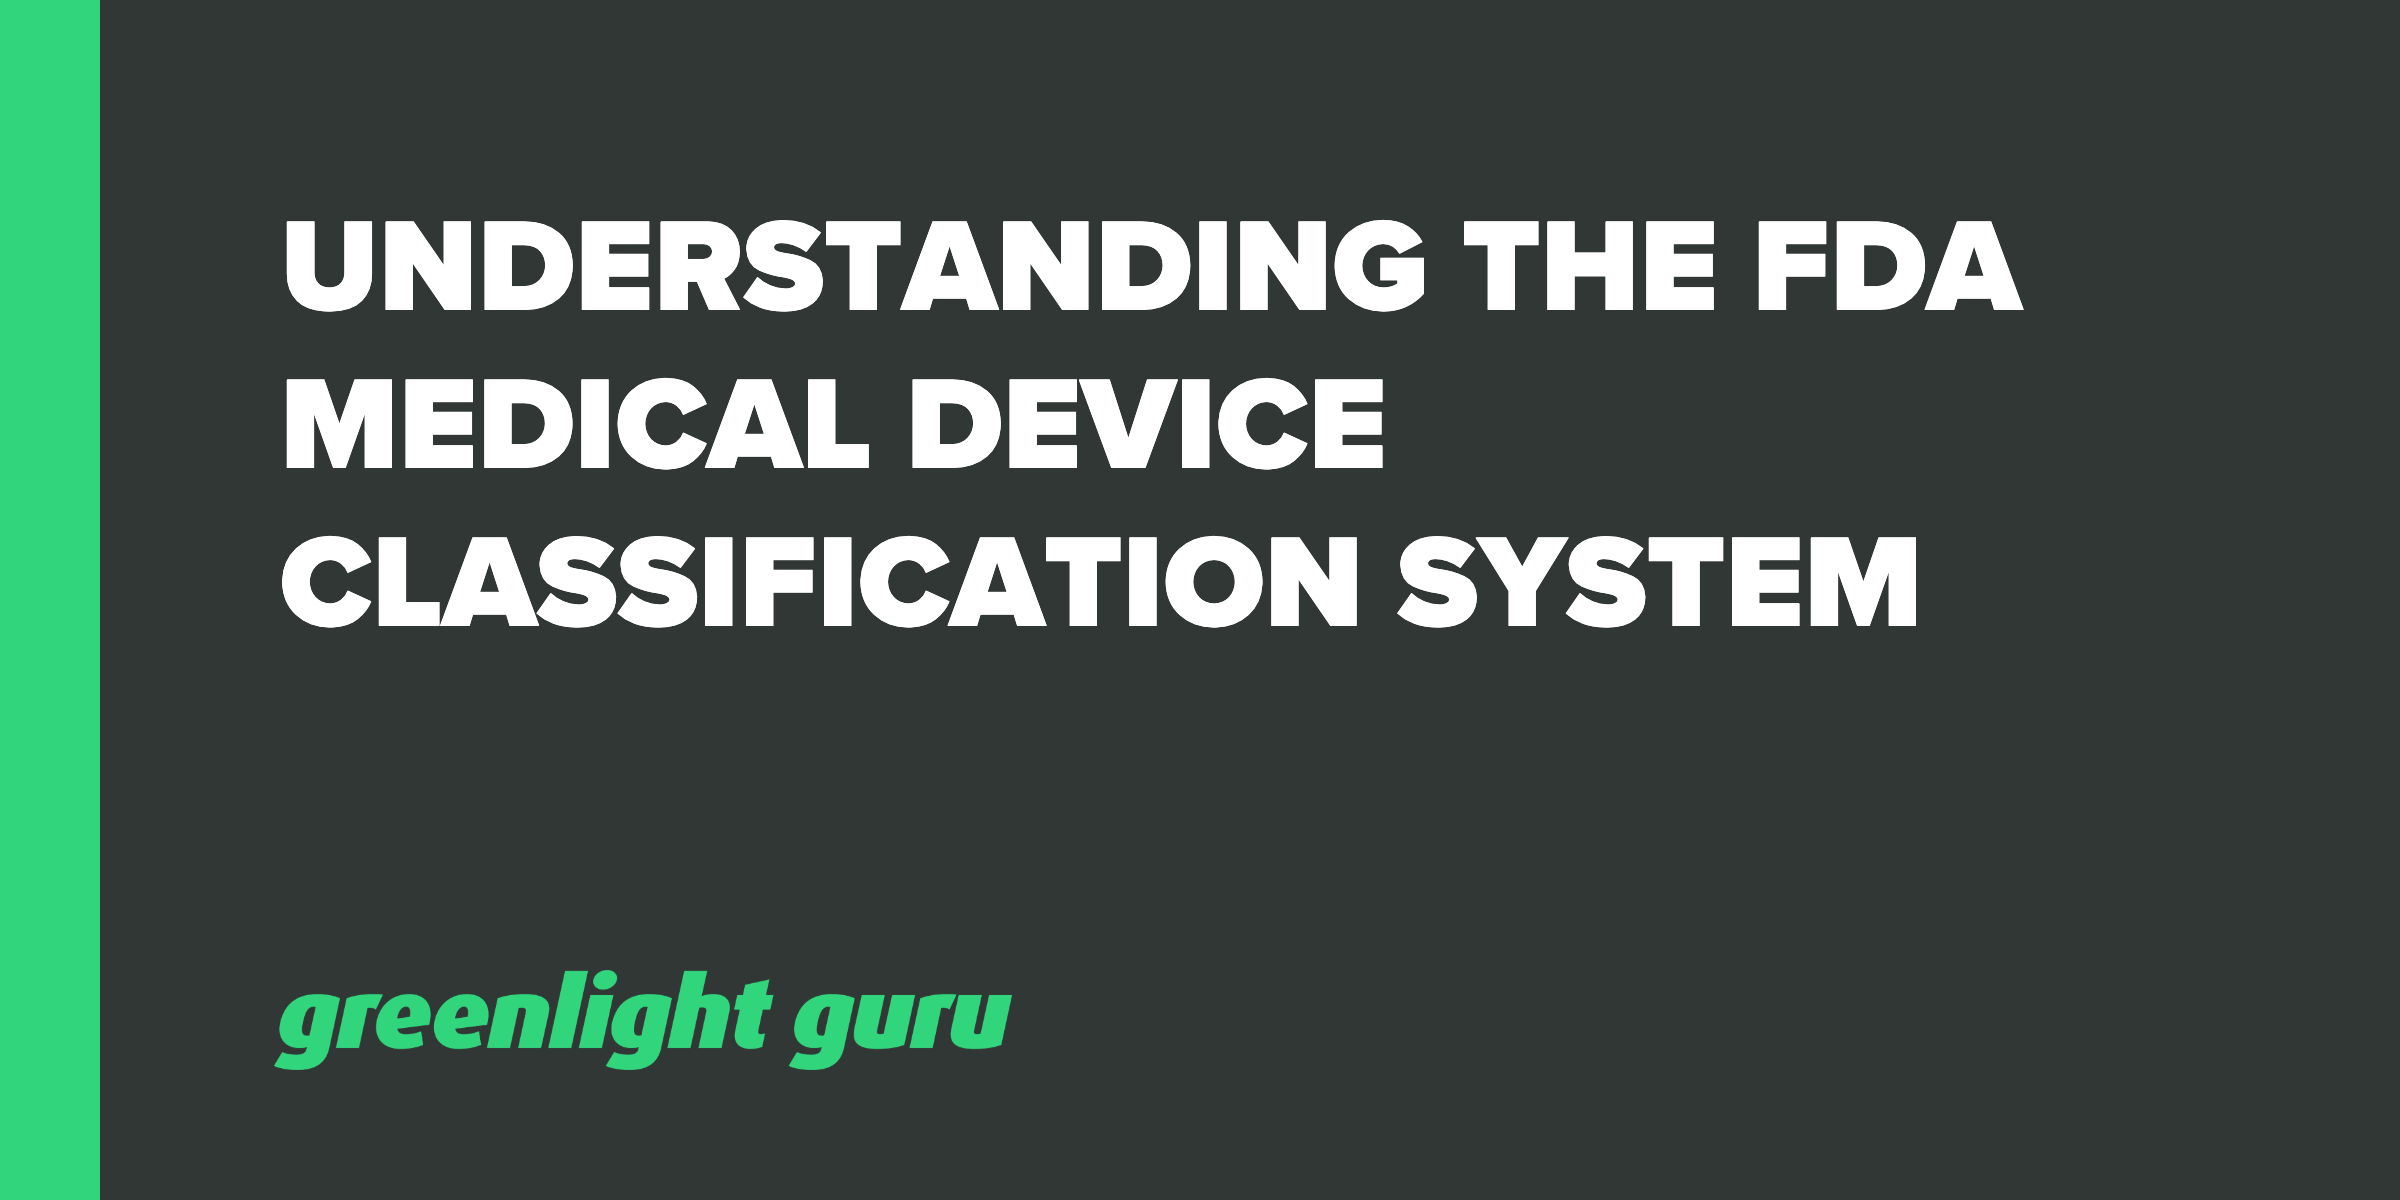 Understanding the FDA Medical Device Classification System - Featured Image